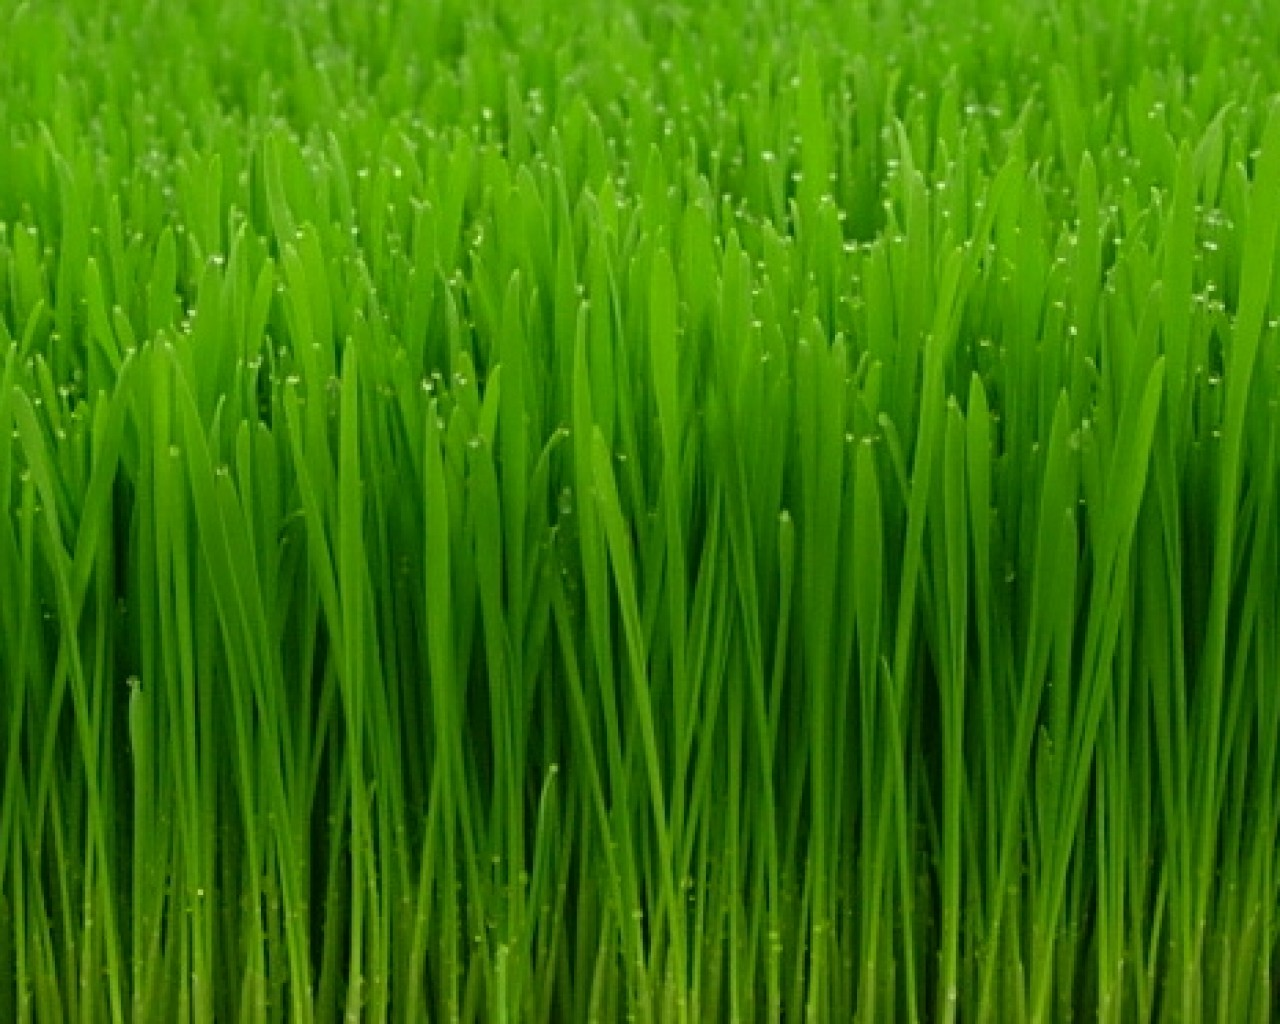 Wheatgrass Pictures 40